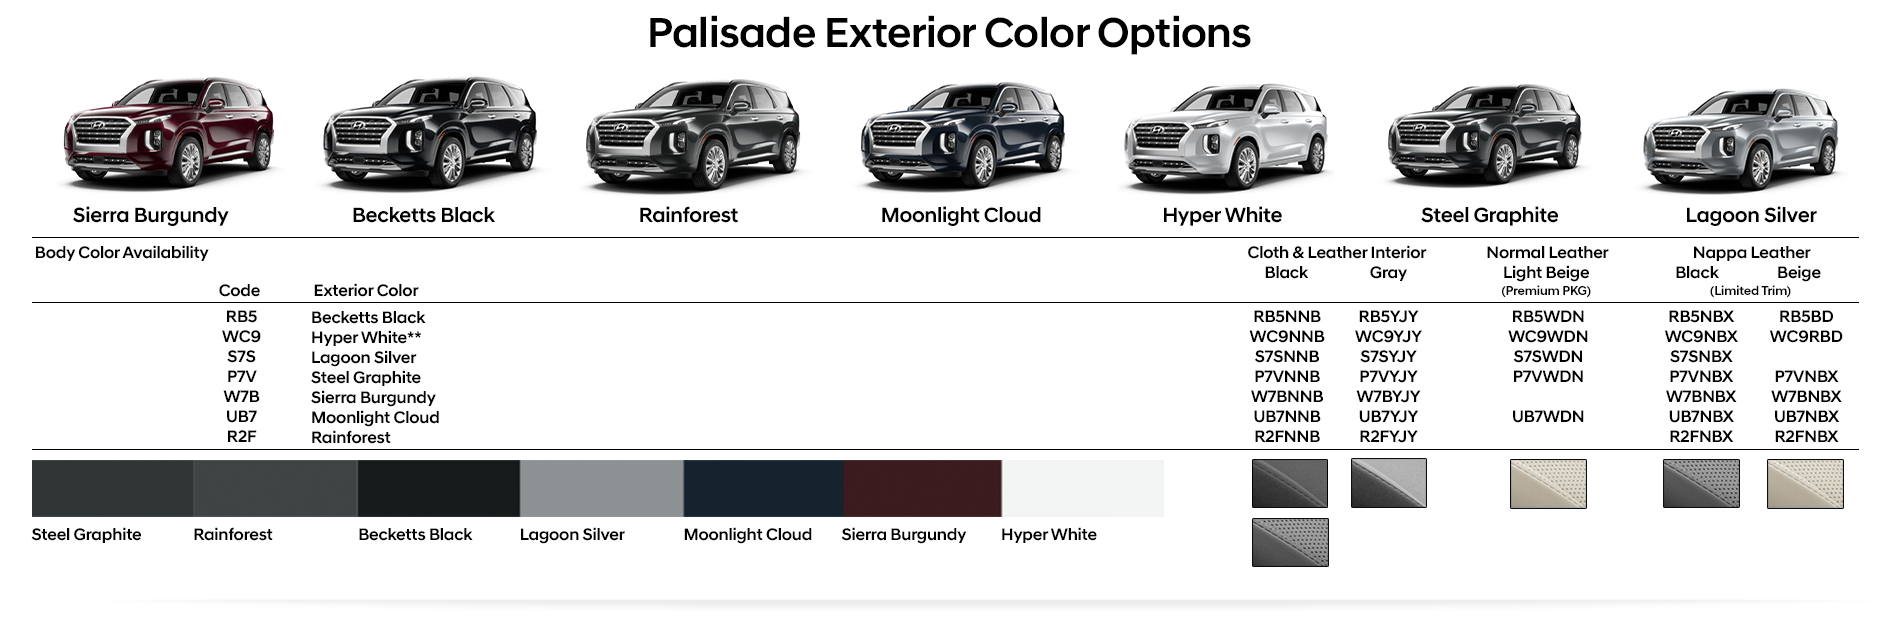 palisade ordering options